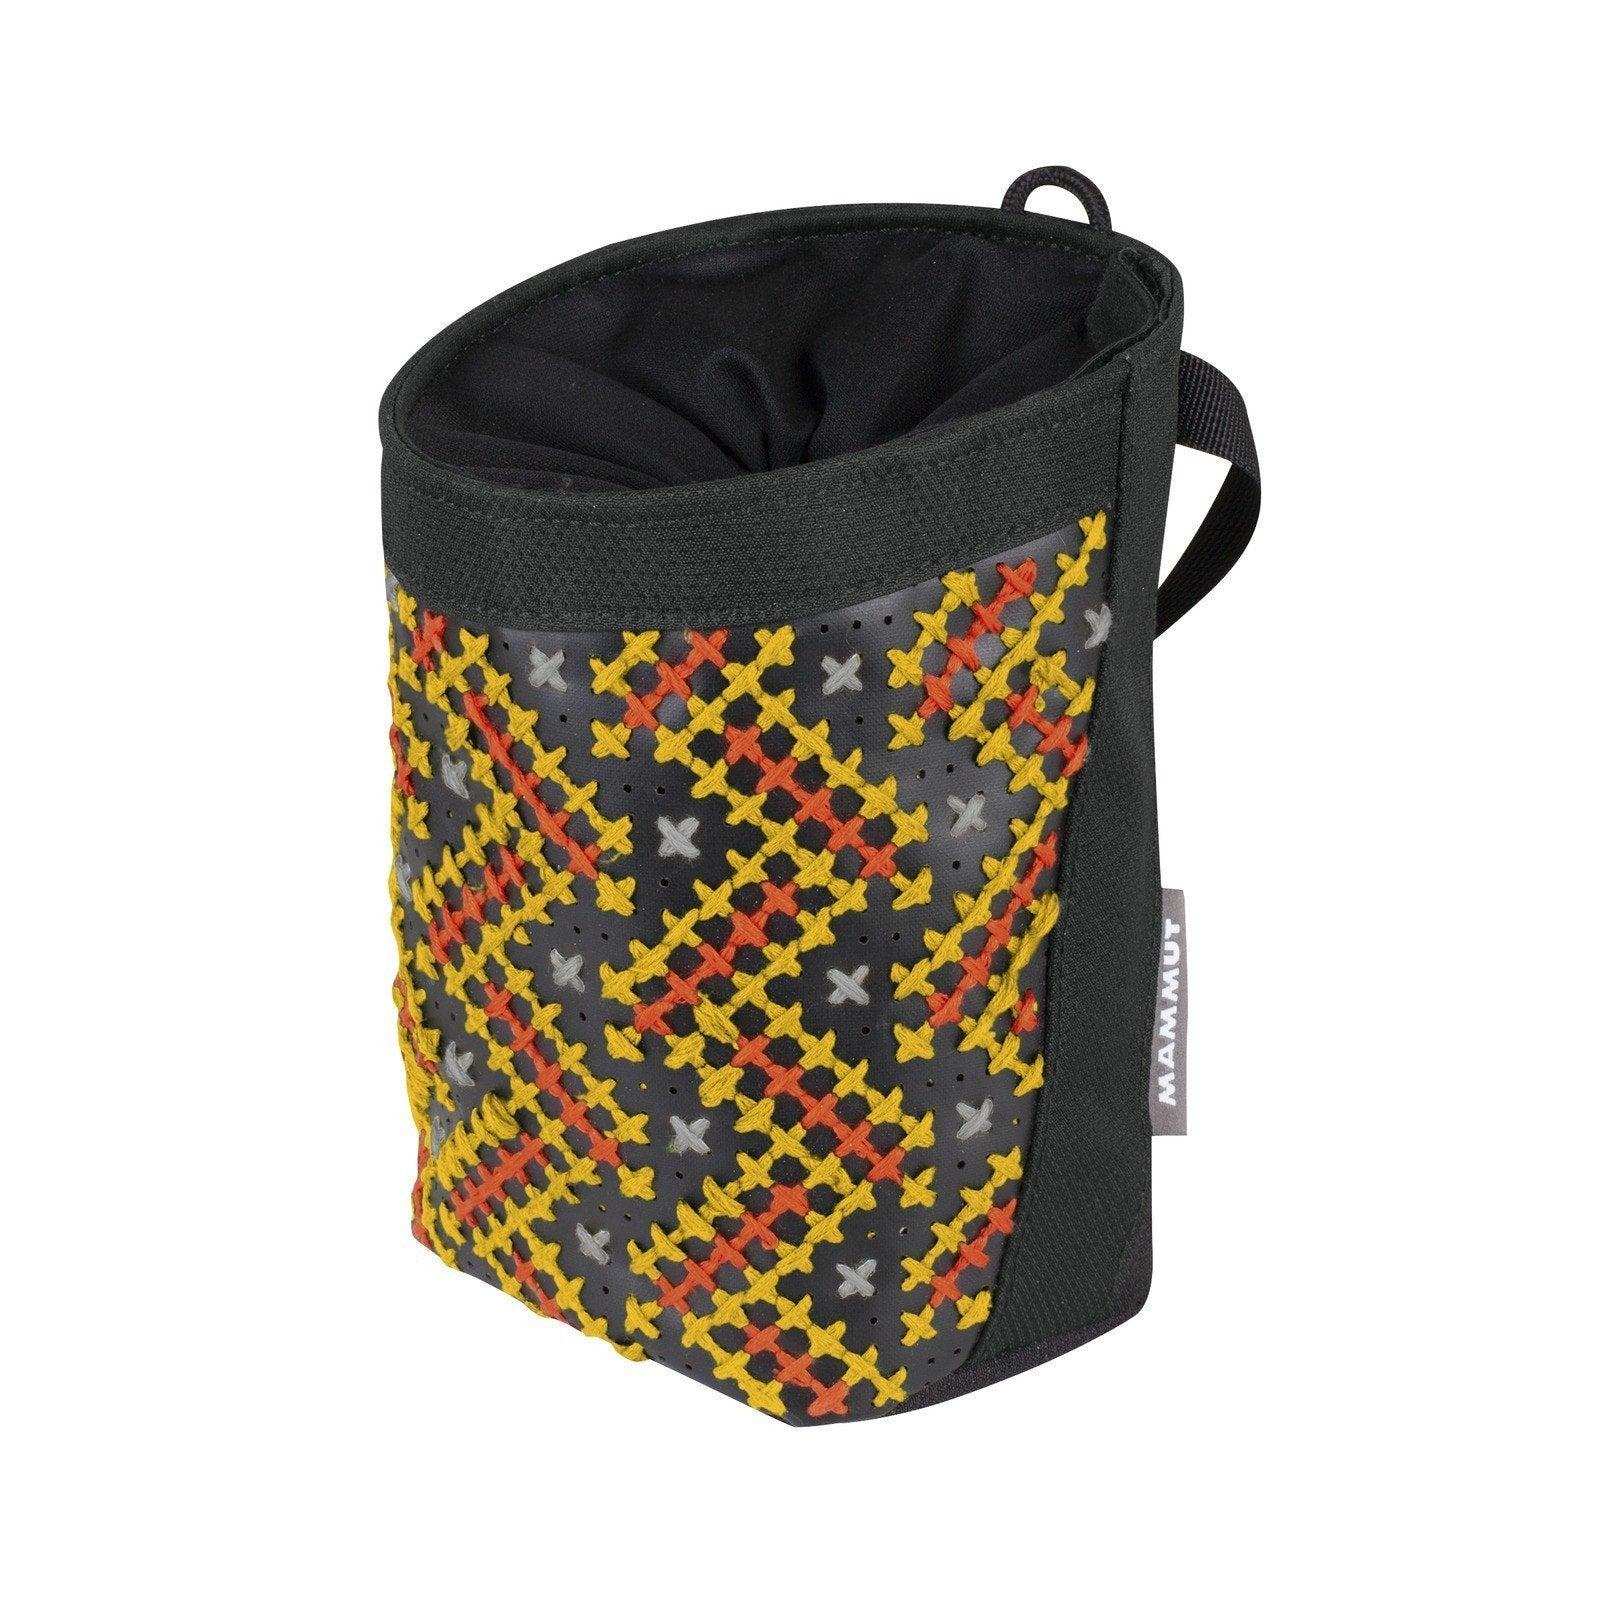 Mammut Stitch climbing Chalk Bag, in black and orange colours